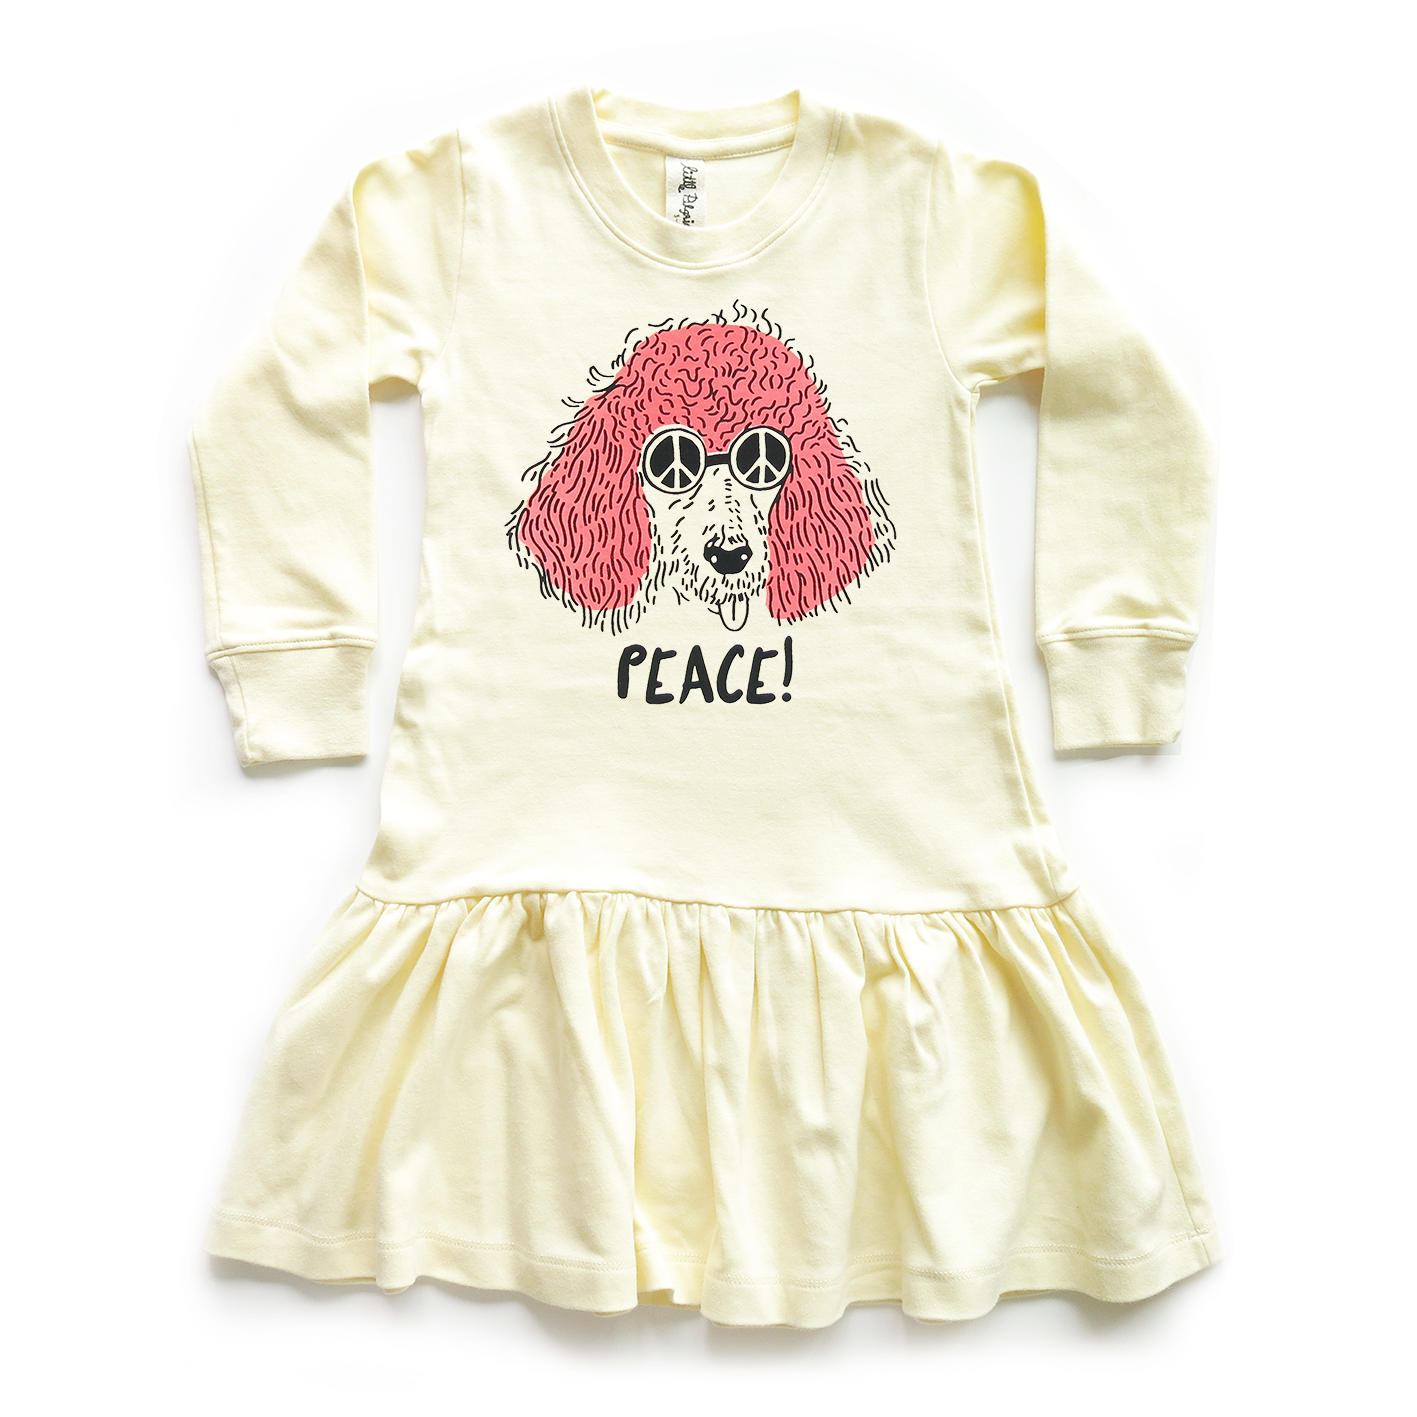 GIRL DRESS 1-7Y. LP0683 PEACE DRESS WITH RUFFLED